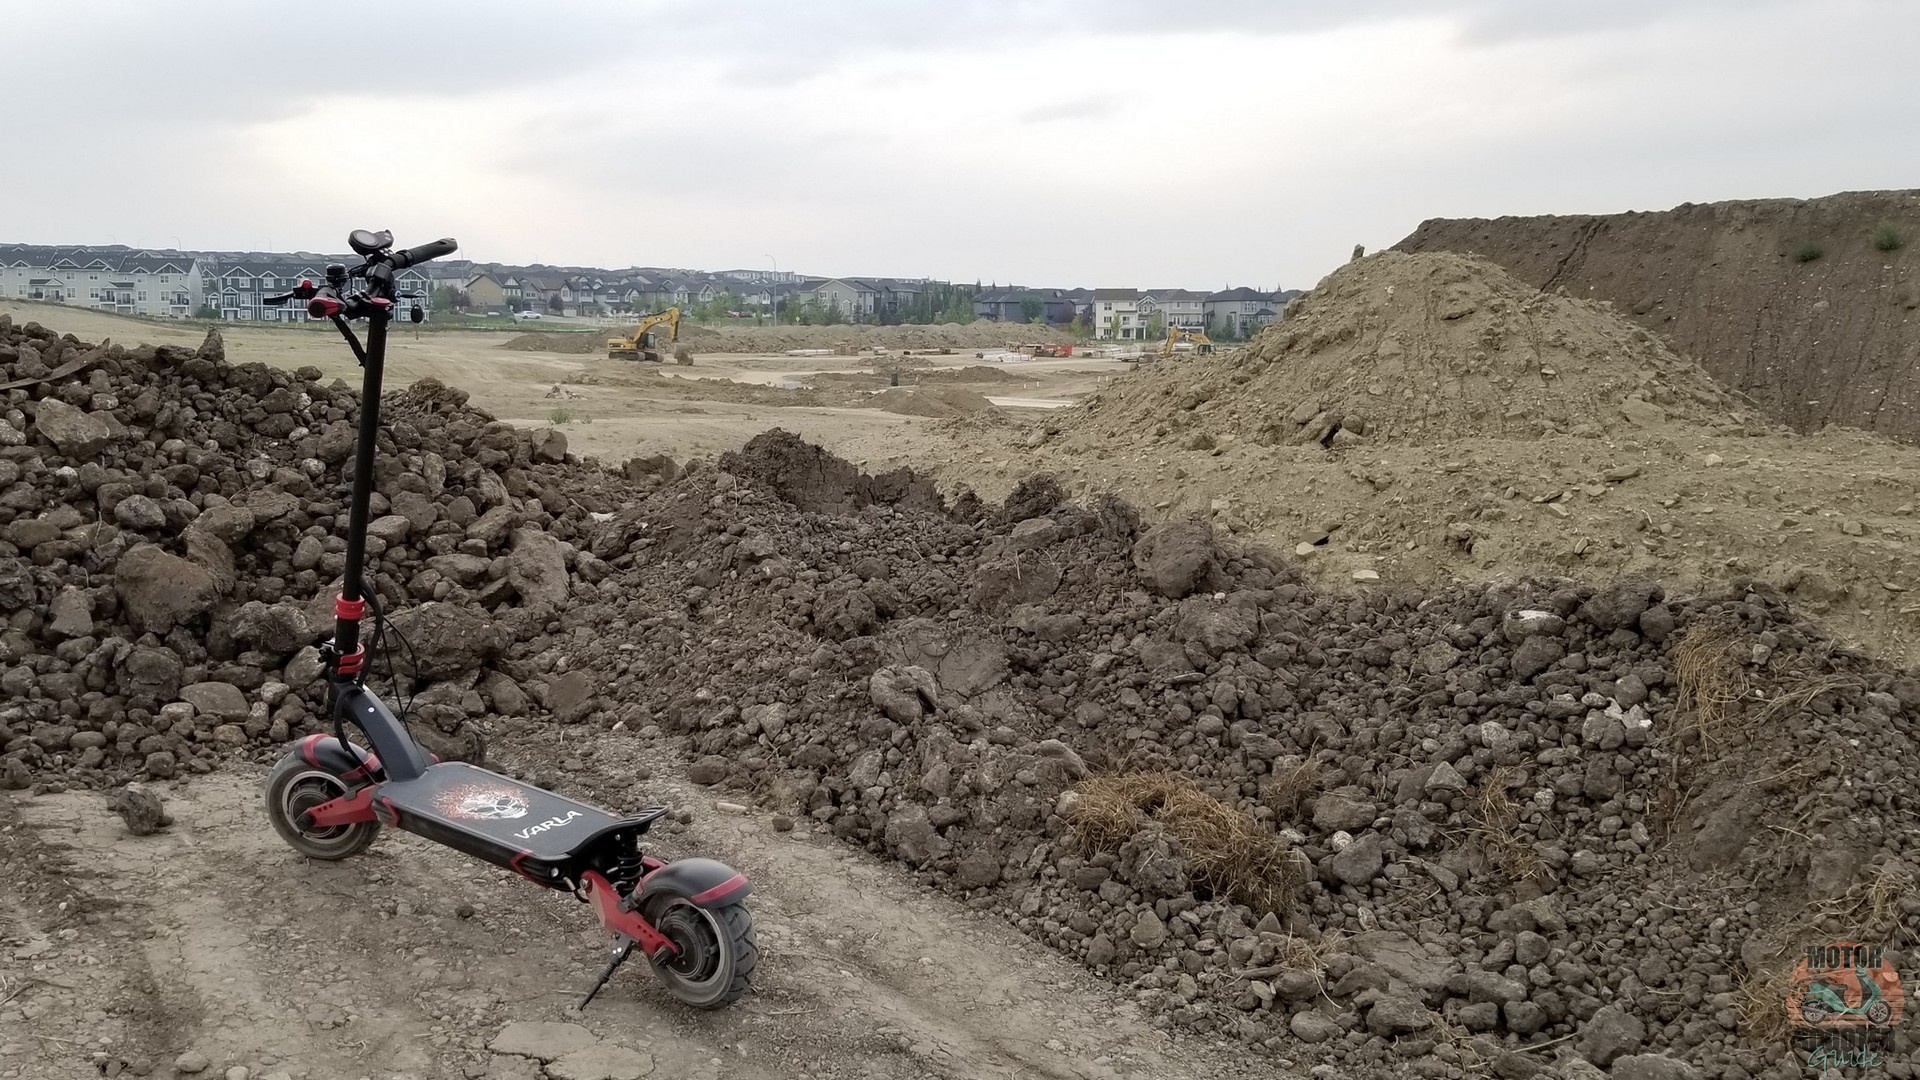 Eagle One scooter in dirt construction area